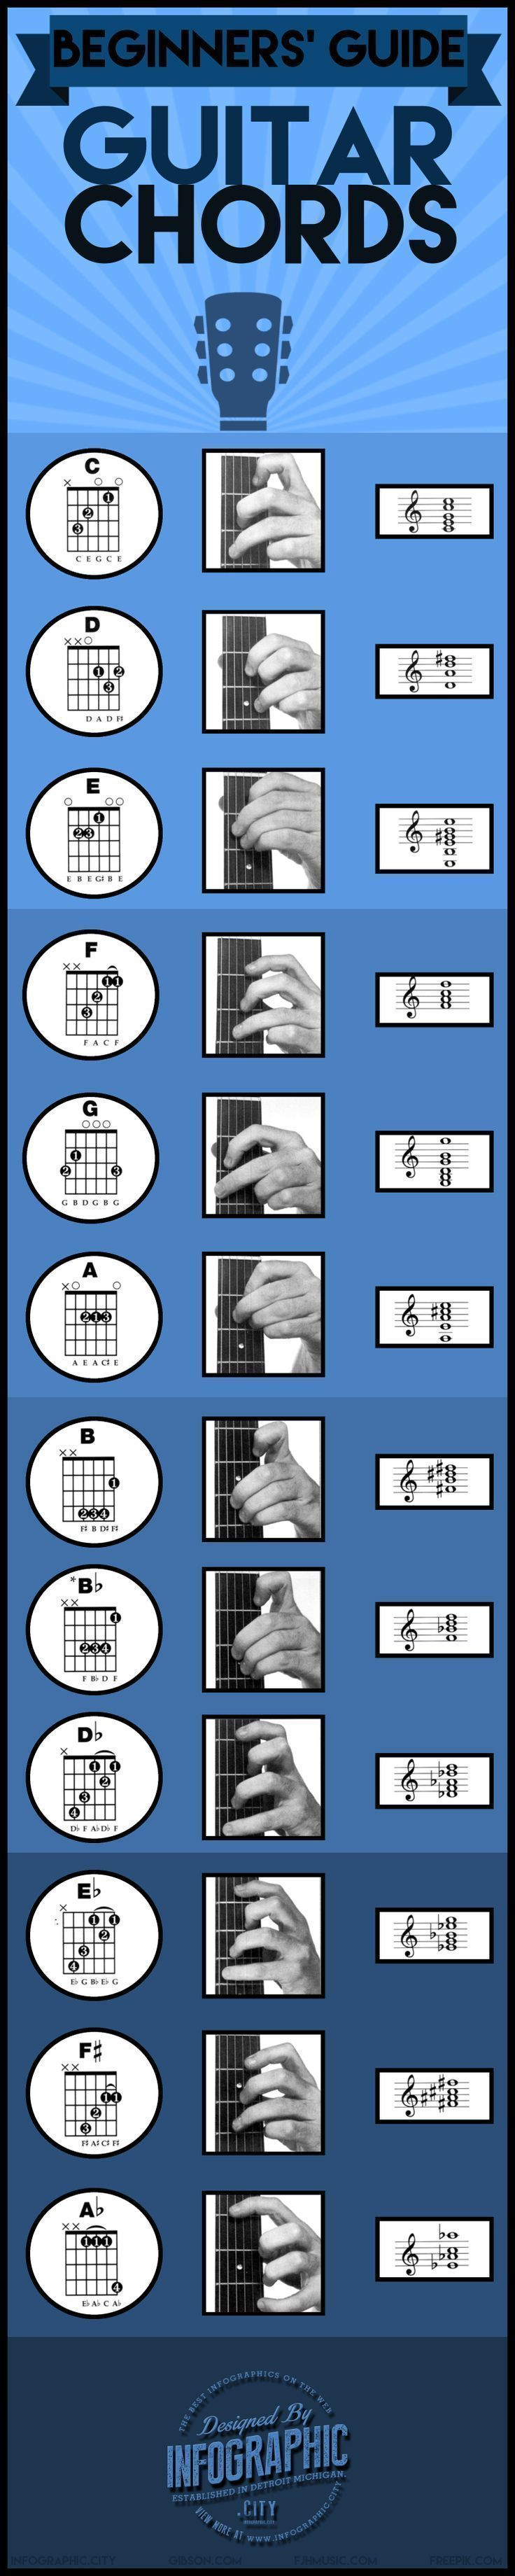 A Beginners Guide To Guitar Chords Infographic #guitarlessons #guitarchords